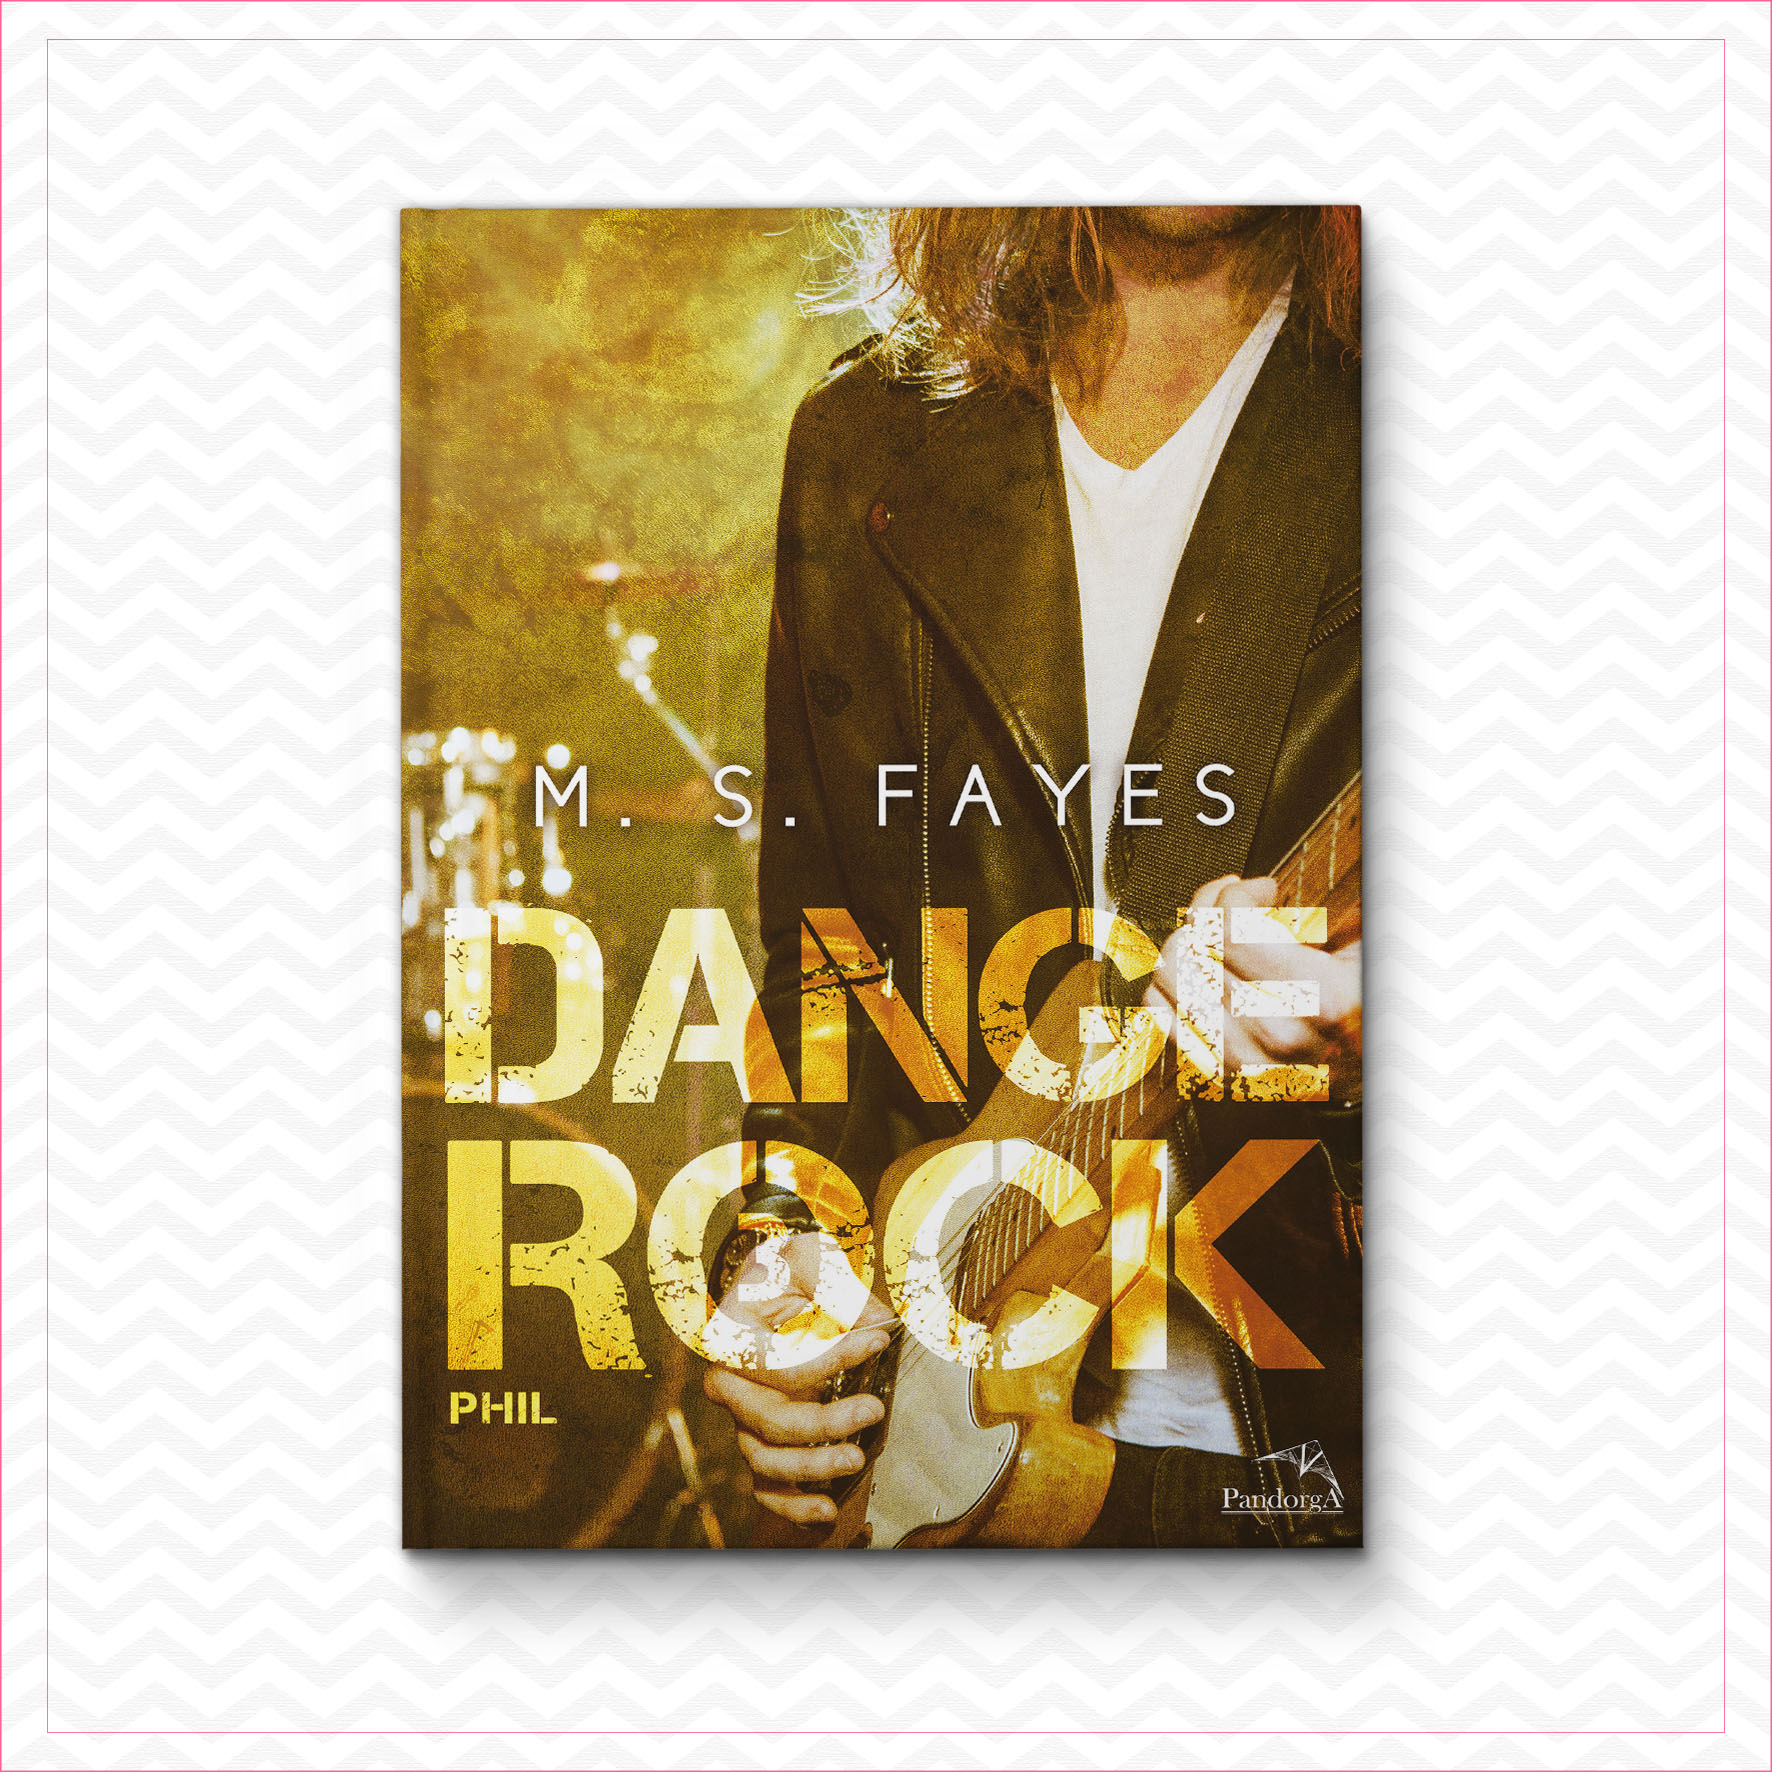 DangeRock 3 – Phil – M. S. Fayes